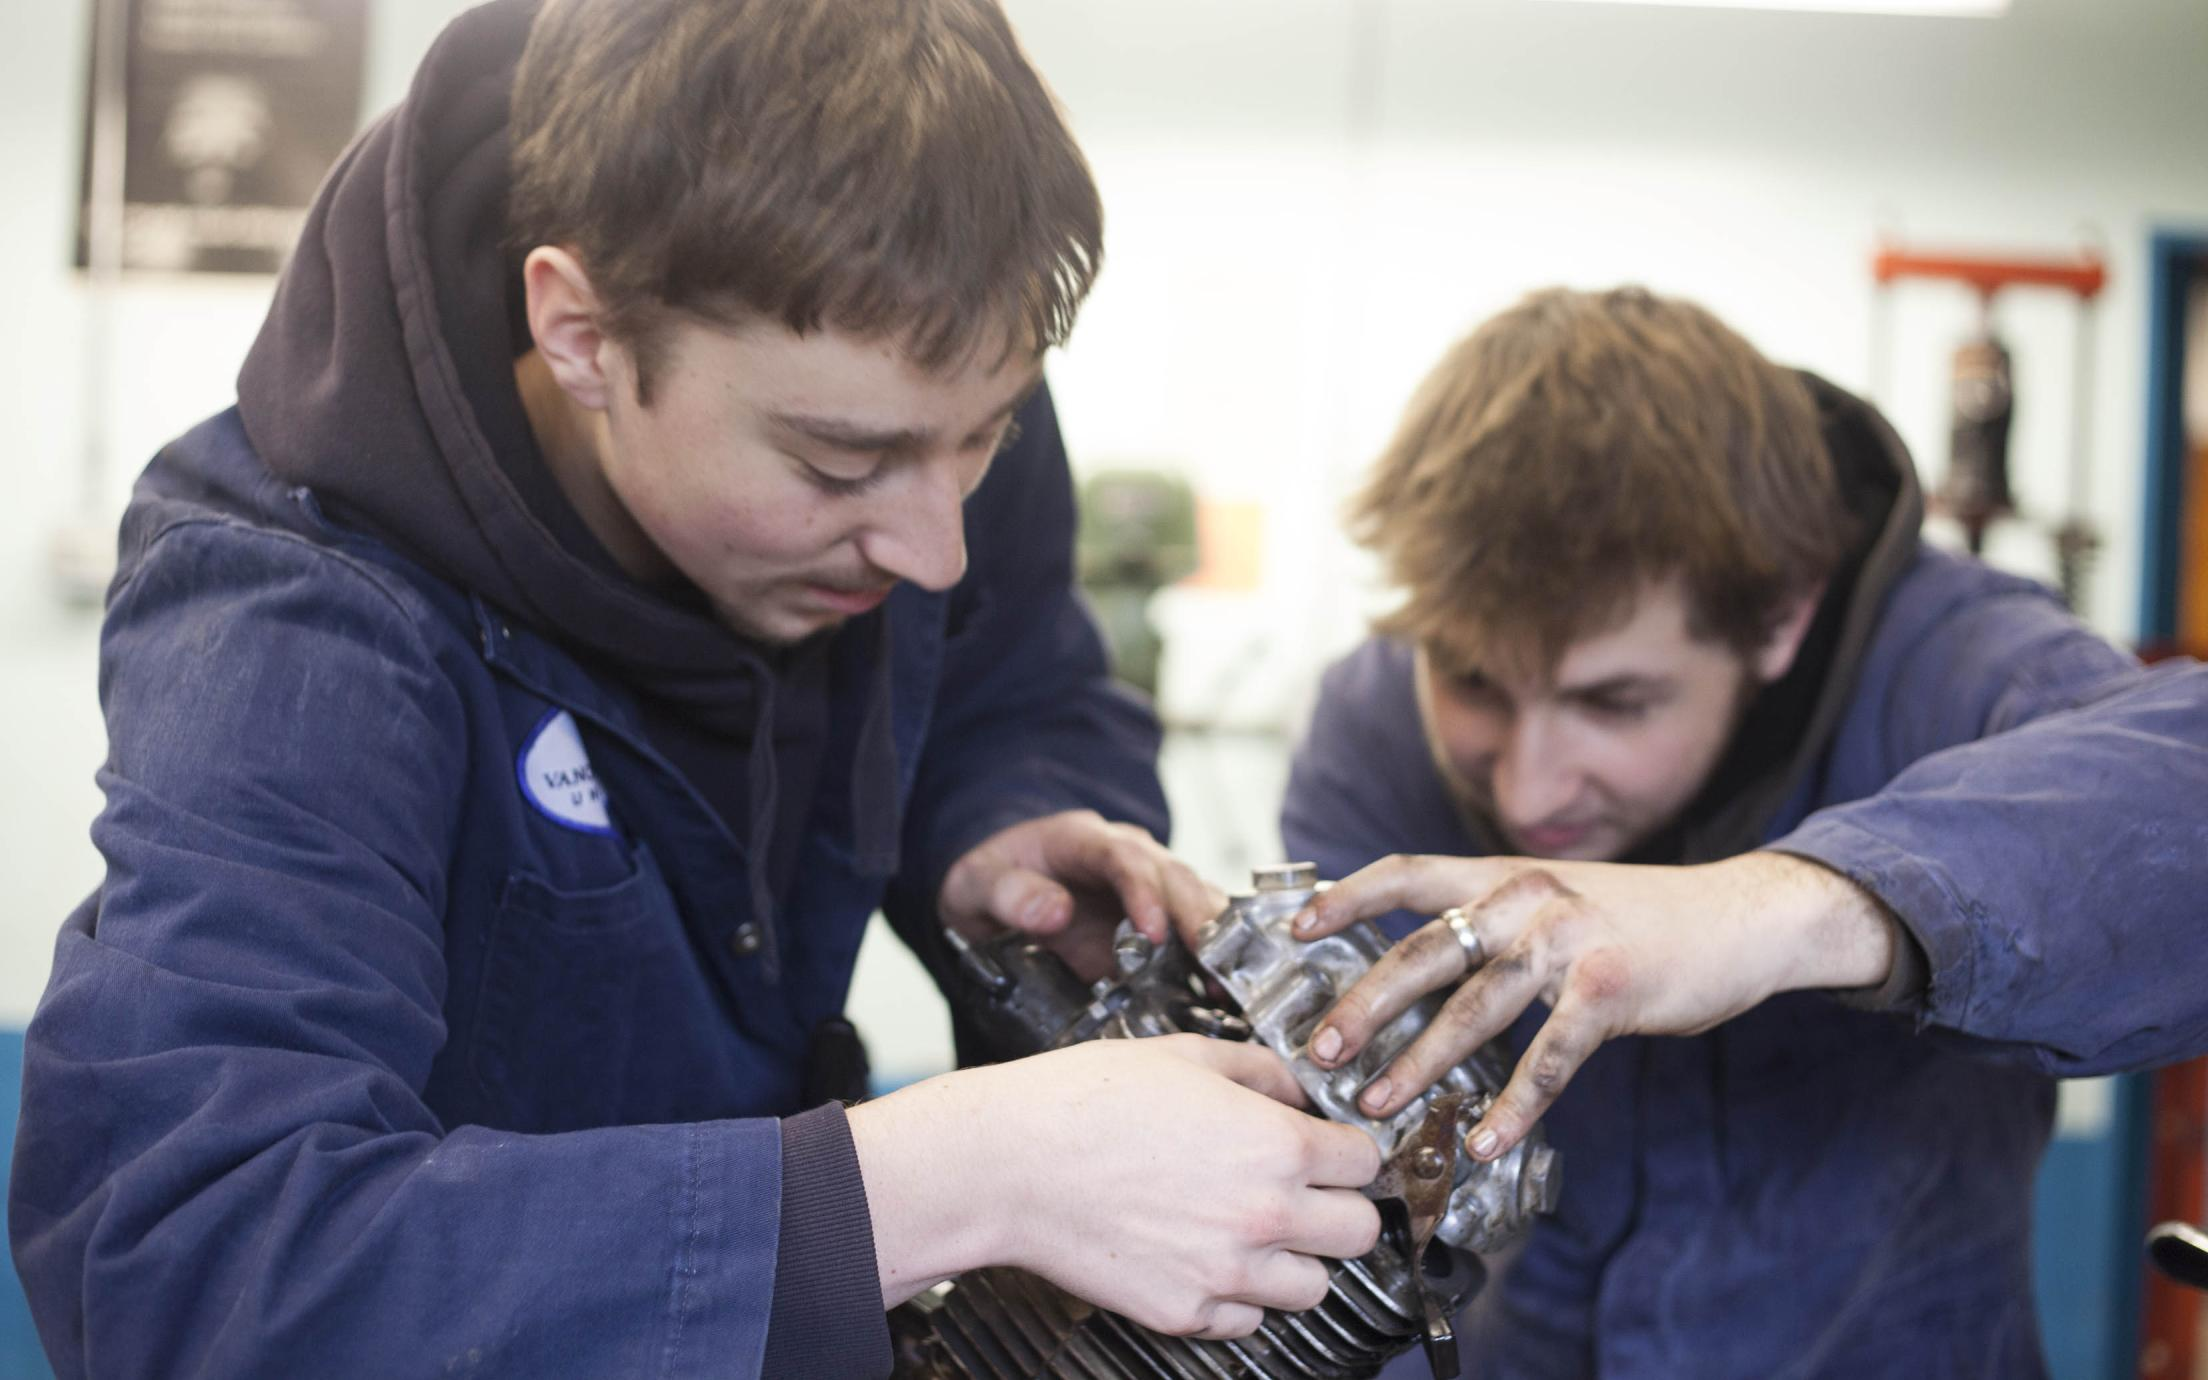 Students of the Marine Technician and Motorcycle Mechanic program repairing an engine